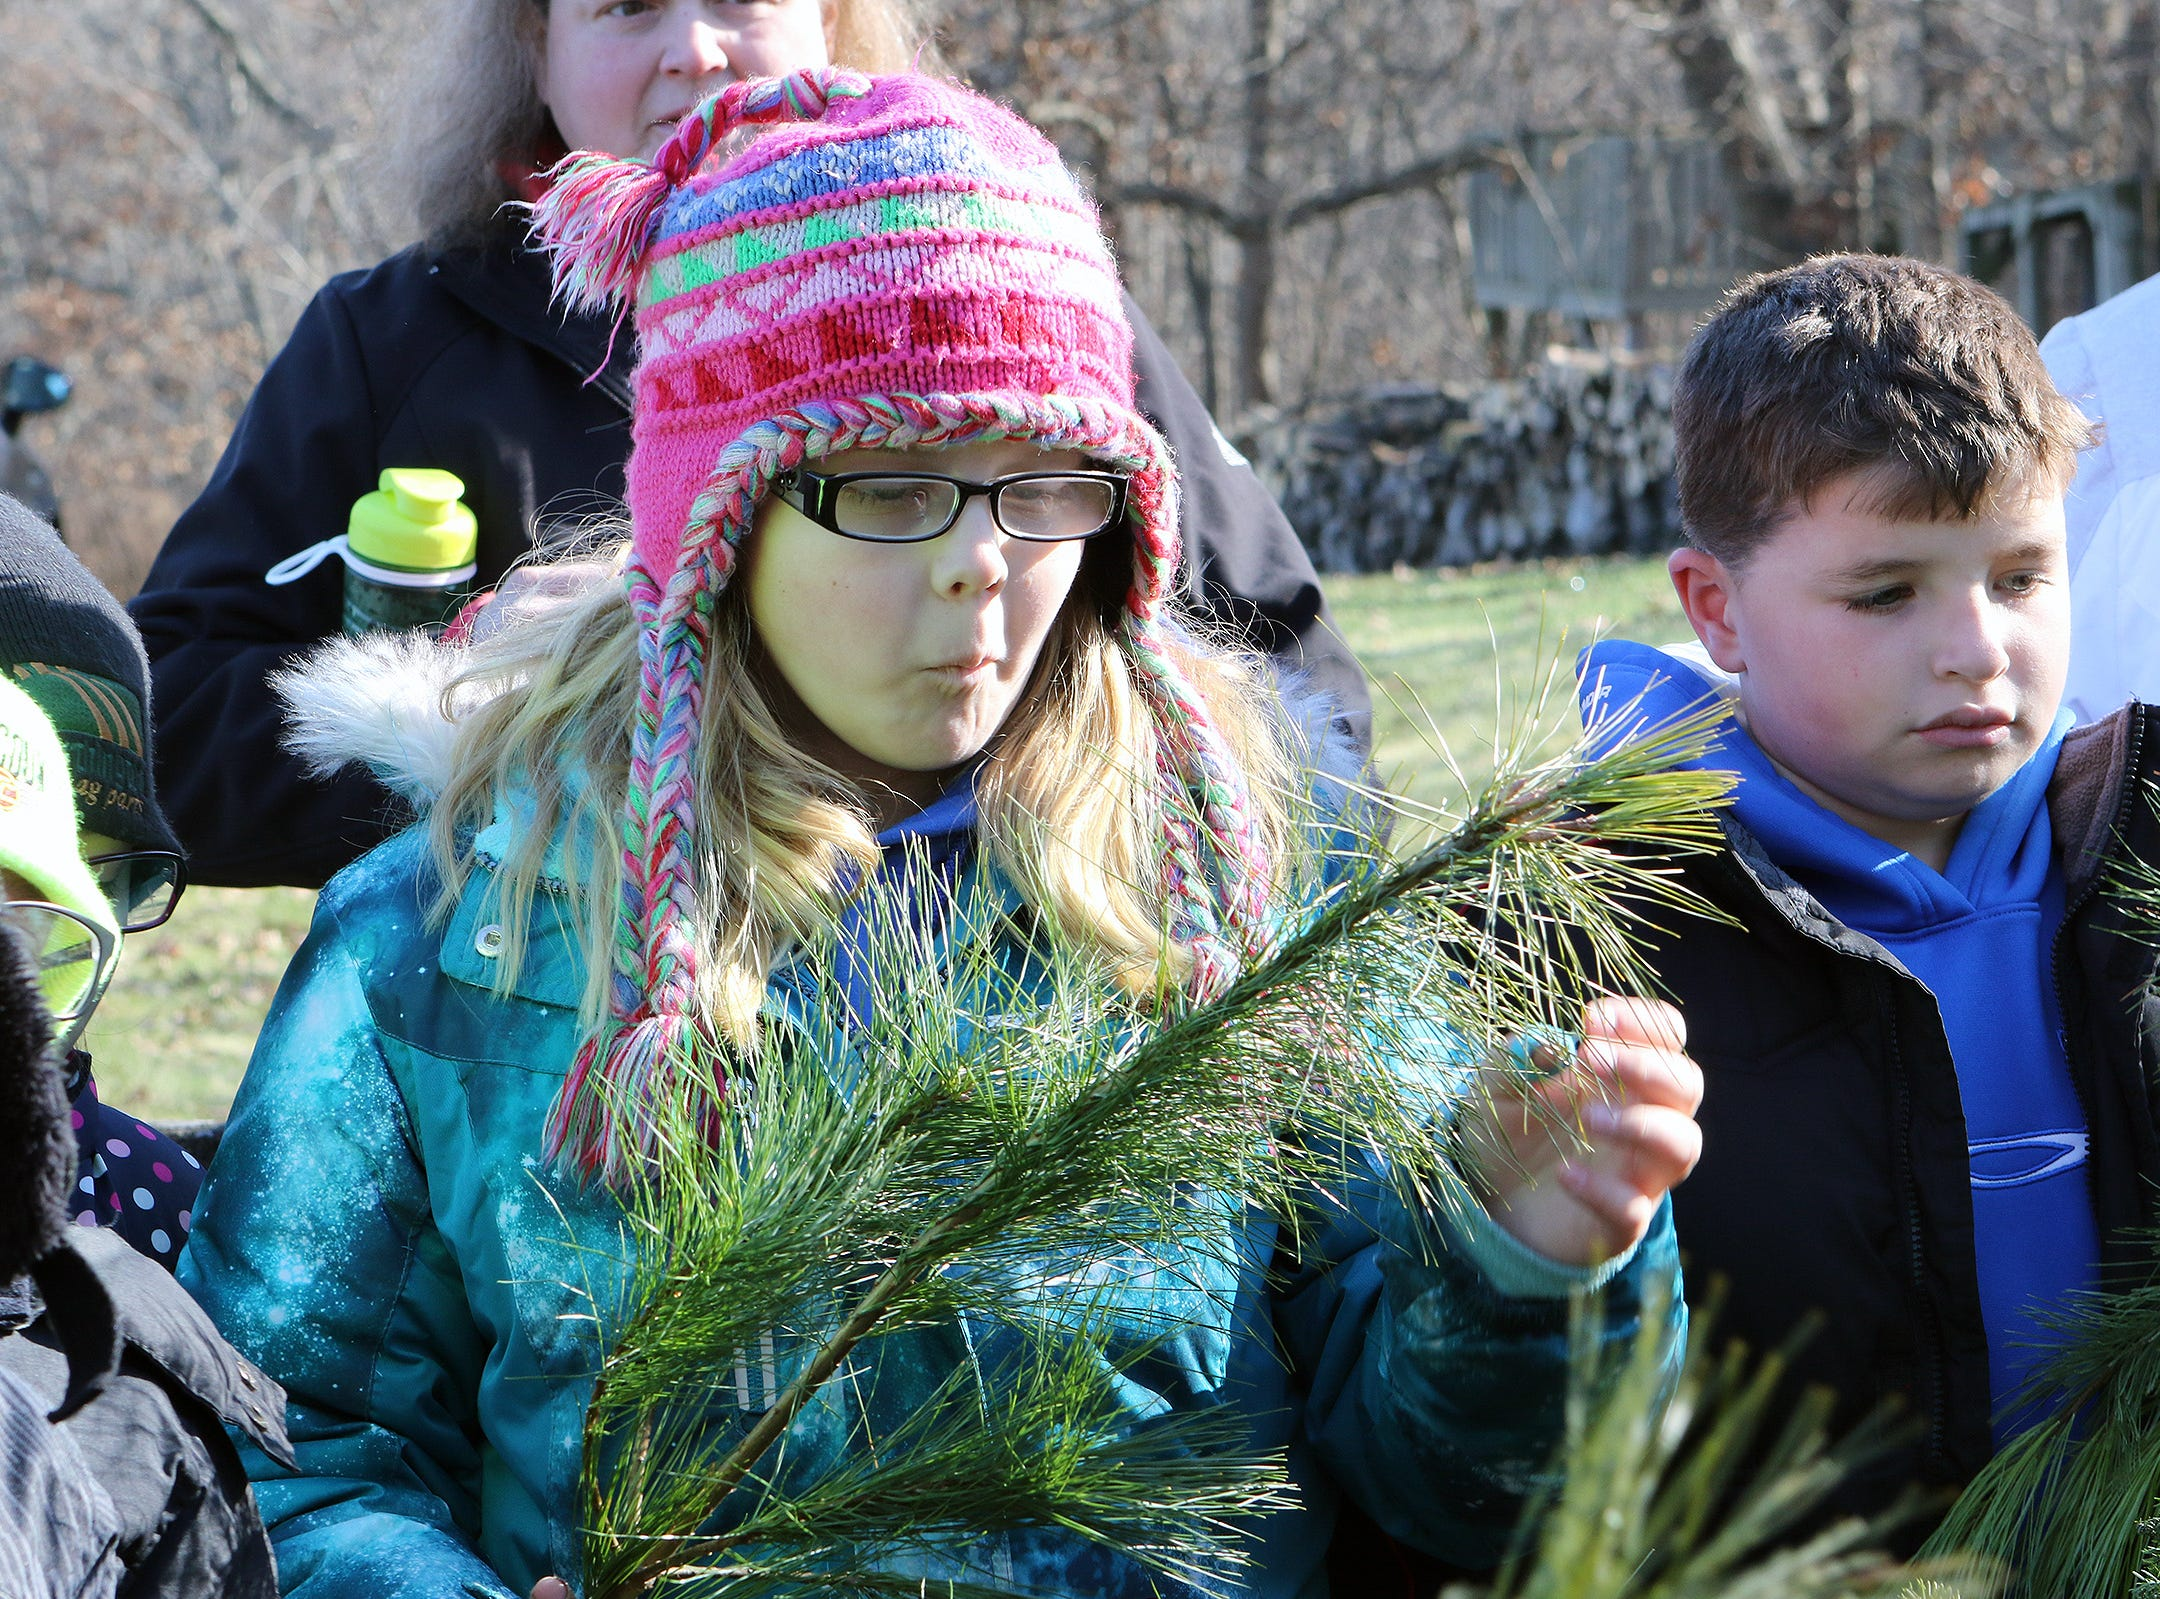 Albany fourth grader, Macknzie Clason, examines the branch of a pine tree at Lancaster's Winterberry Tree Farm in Brooklyn on Nov. 15. Students visited the farm to learn about the Christmas tree industry and see Alice in Dairyland help cut the a Christmas tree to mark the start of the 2018 season.